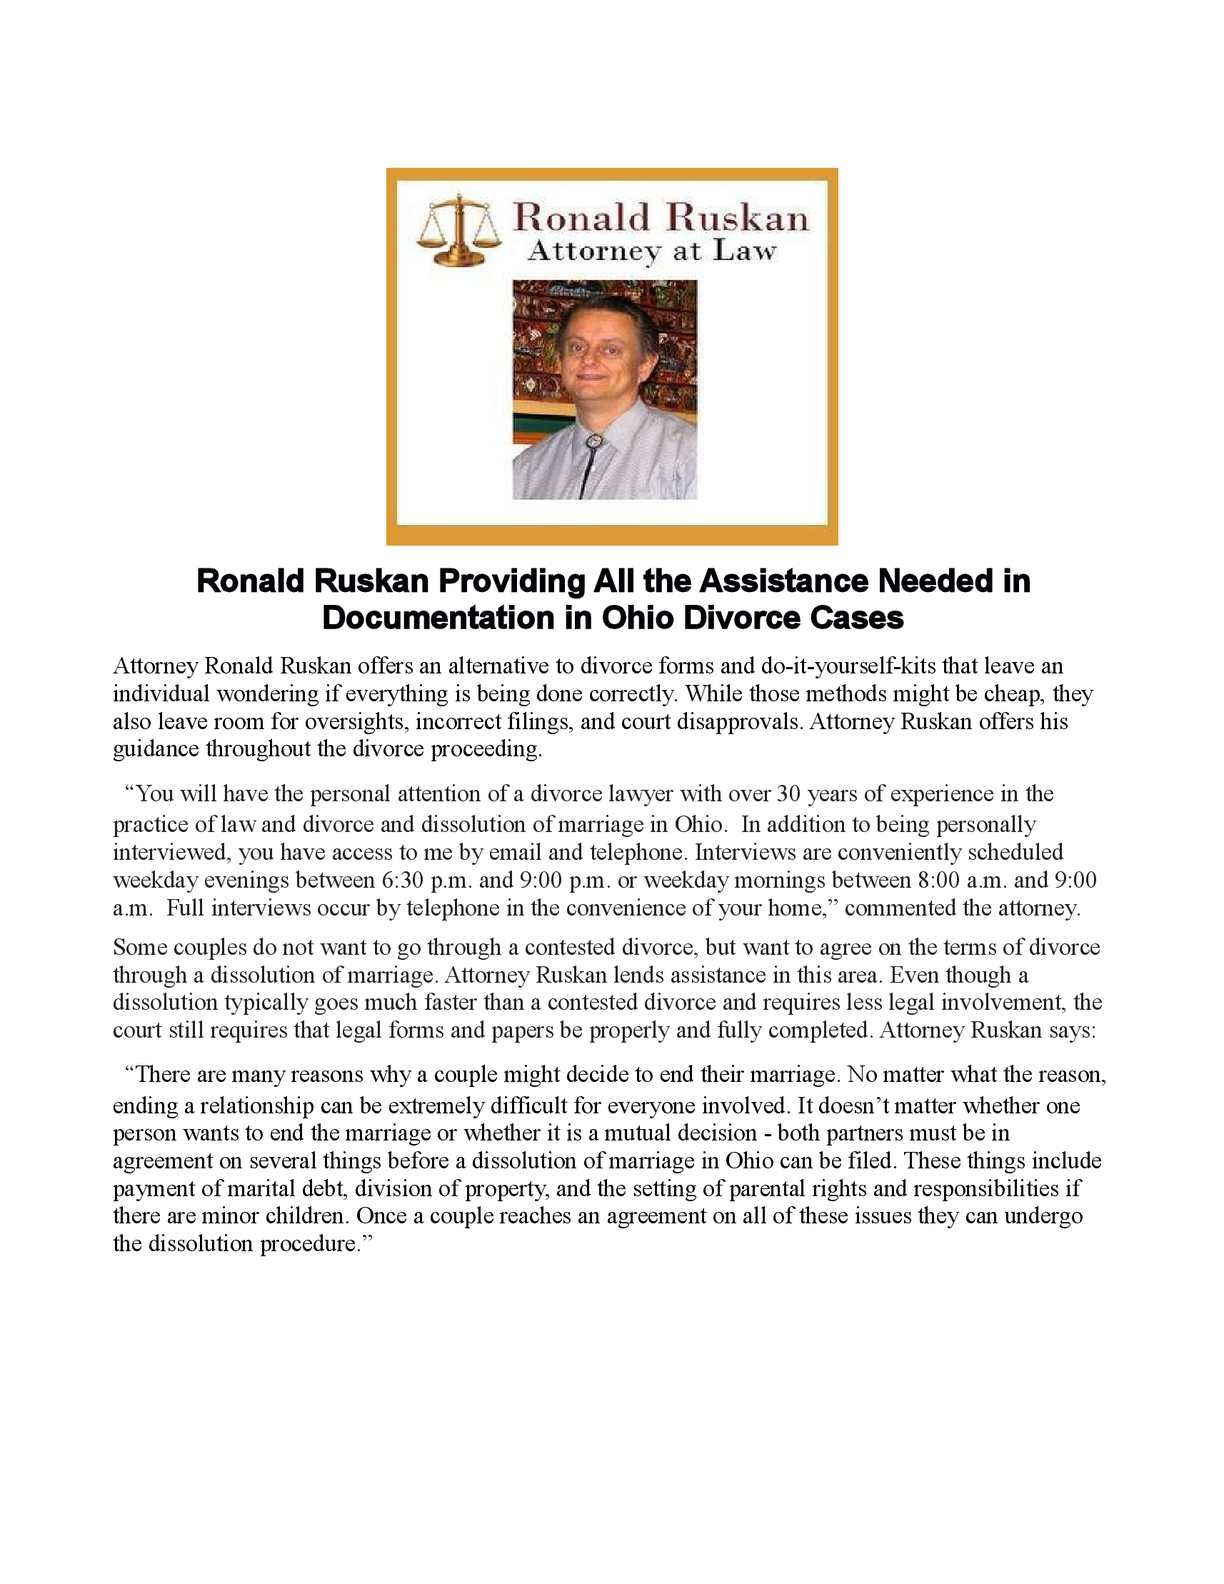 Calamo ronald ruskan providing all the assistance needed in calamo ronald ruskan providing all the assistance needed in documentation in ohio divorce cases solutioingenieria Images